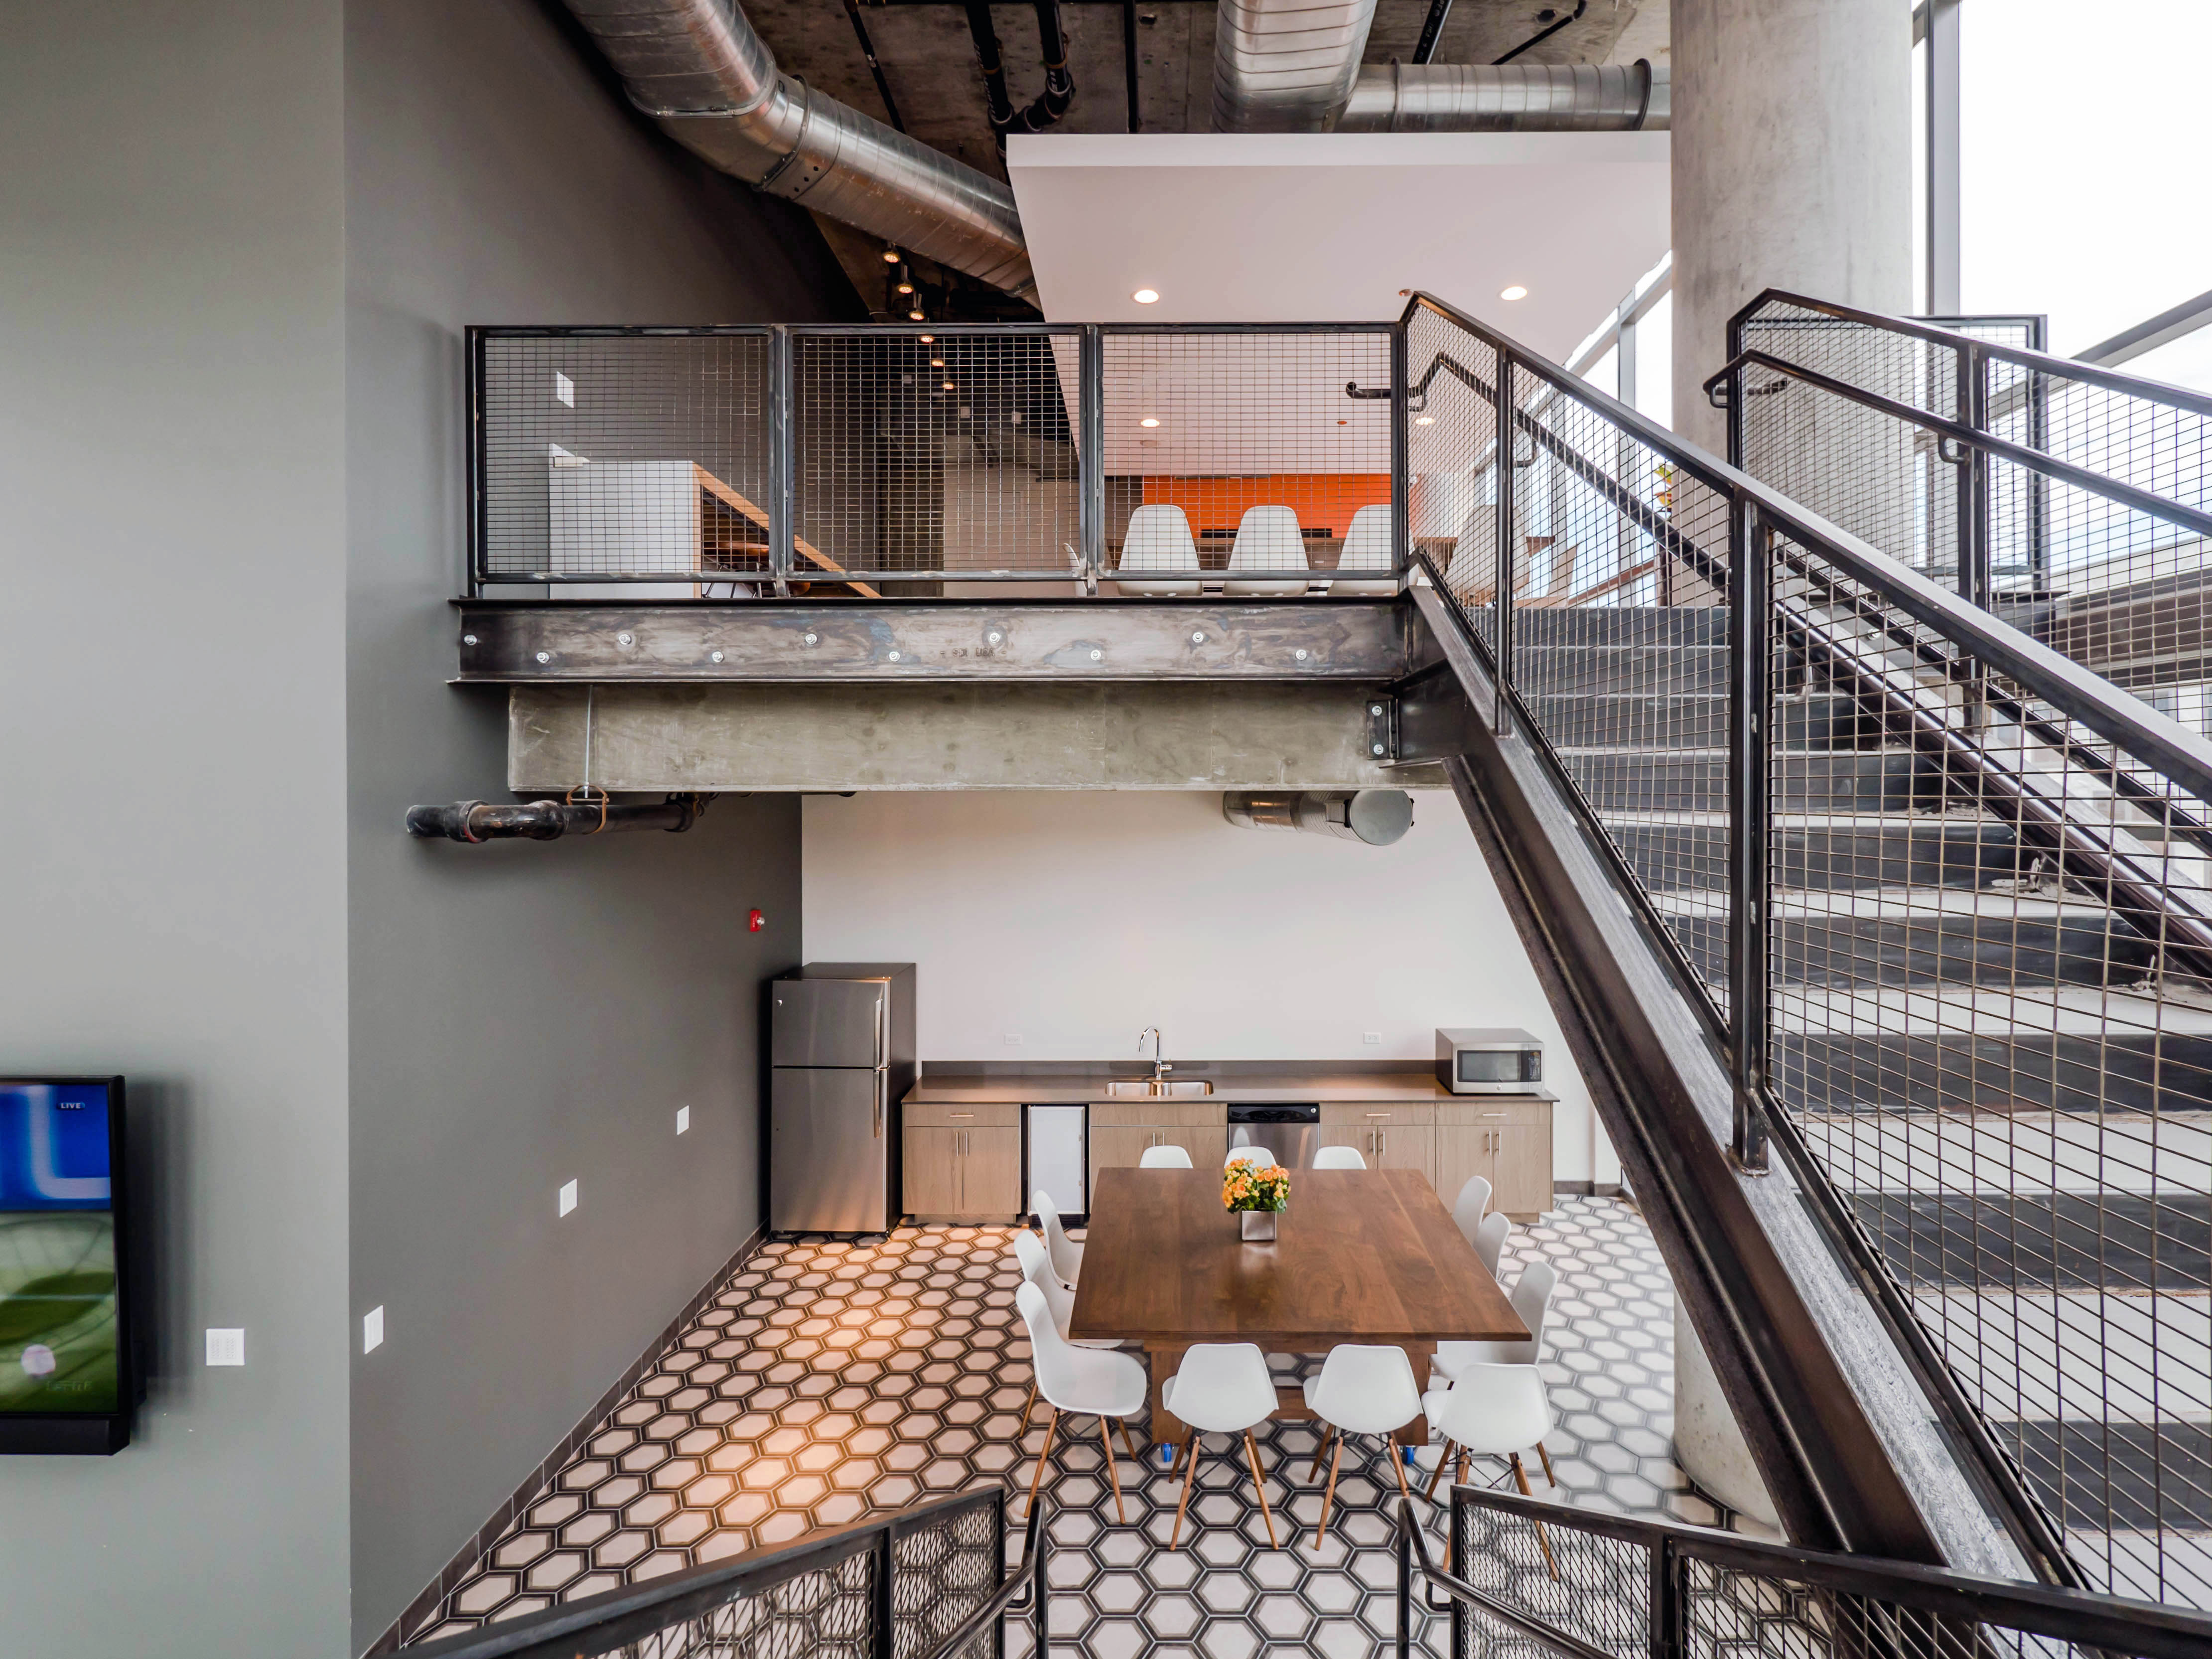 2 Story Aesthetic Apartment - 307693_Simple 2 Story Aesthetic Apartment - 307693  Snapshot_406665.jpg